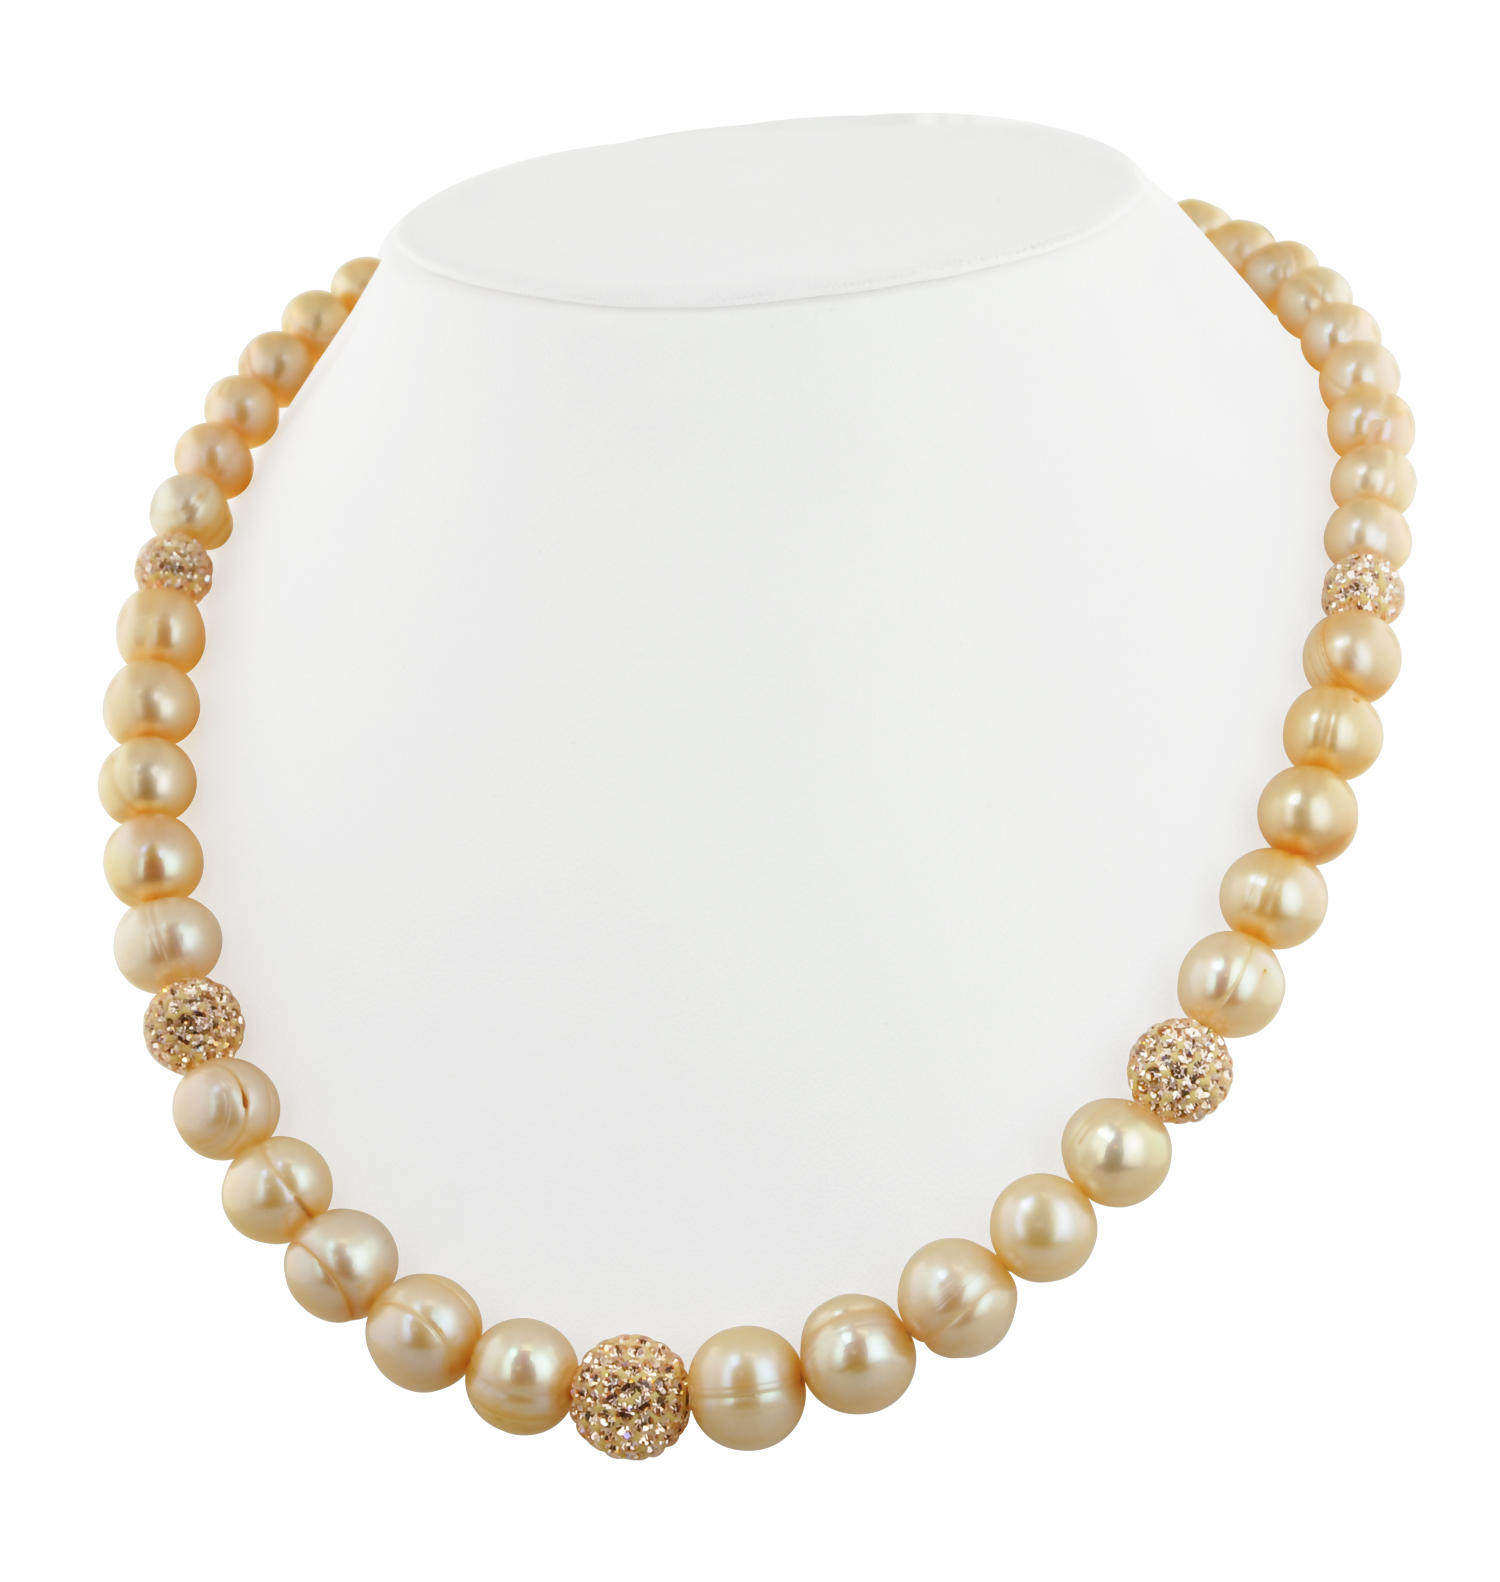 Sterling Silver 8-12mm Champagne Ringed Freshwater Cultured Pearl with Pave Crystal Beads 18 Necklace